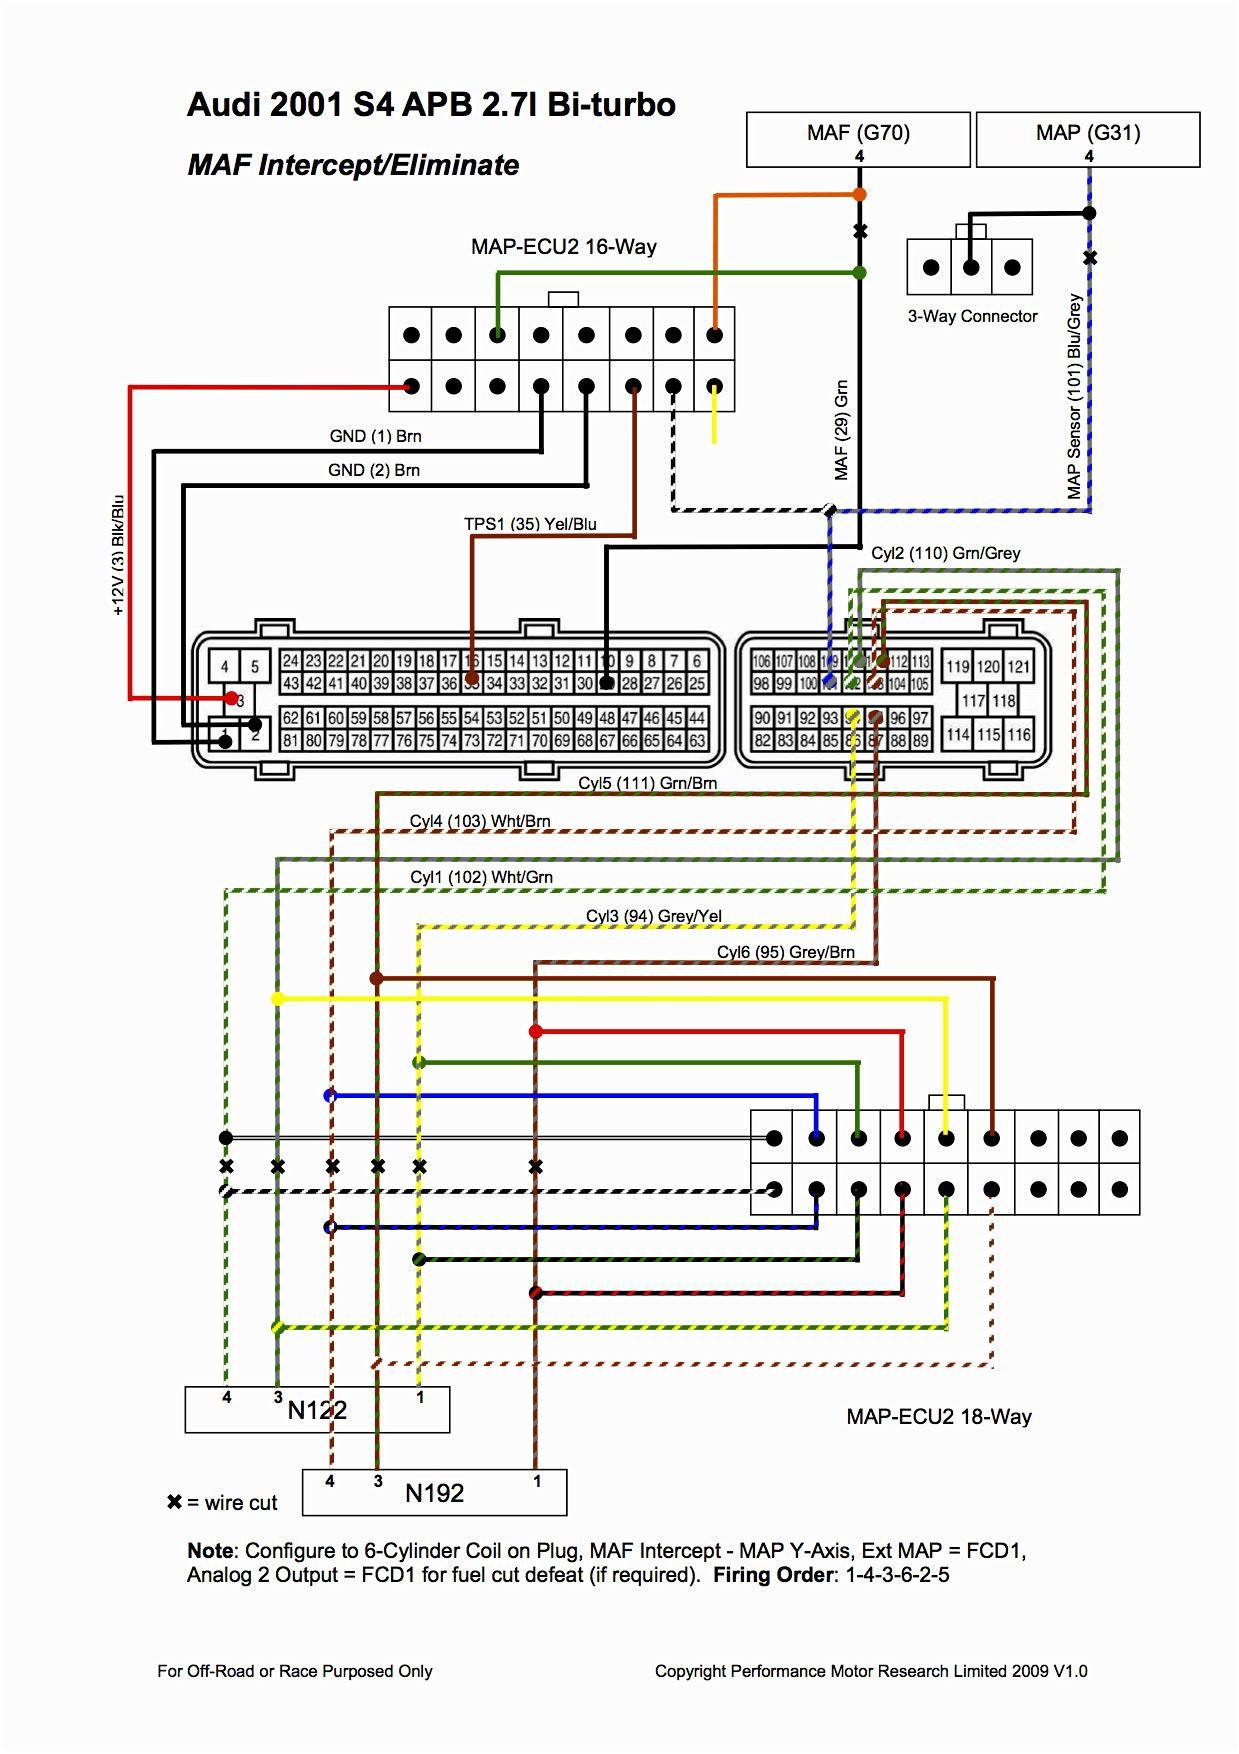 Dodge Stratus Wiring Diagram 2 Din Wiring Diagram Diagrams Schematics Amazing Double Of Dodge Stratus Wiring Diagram